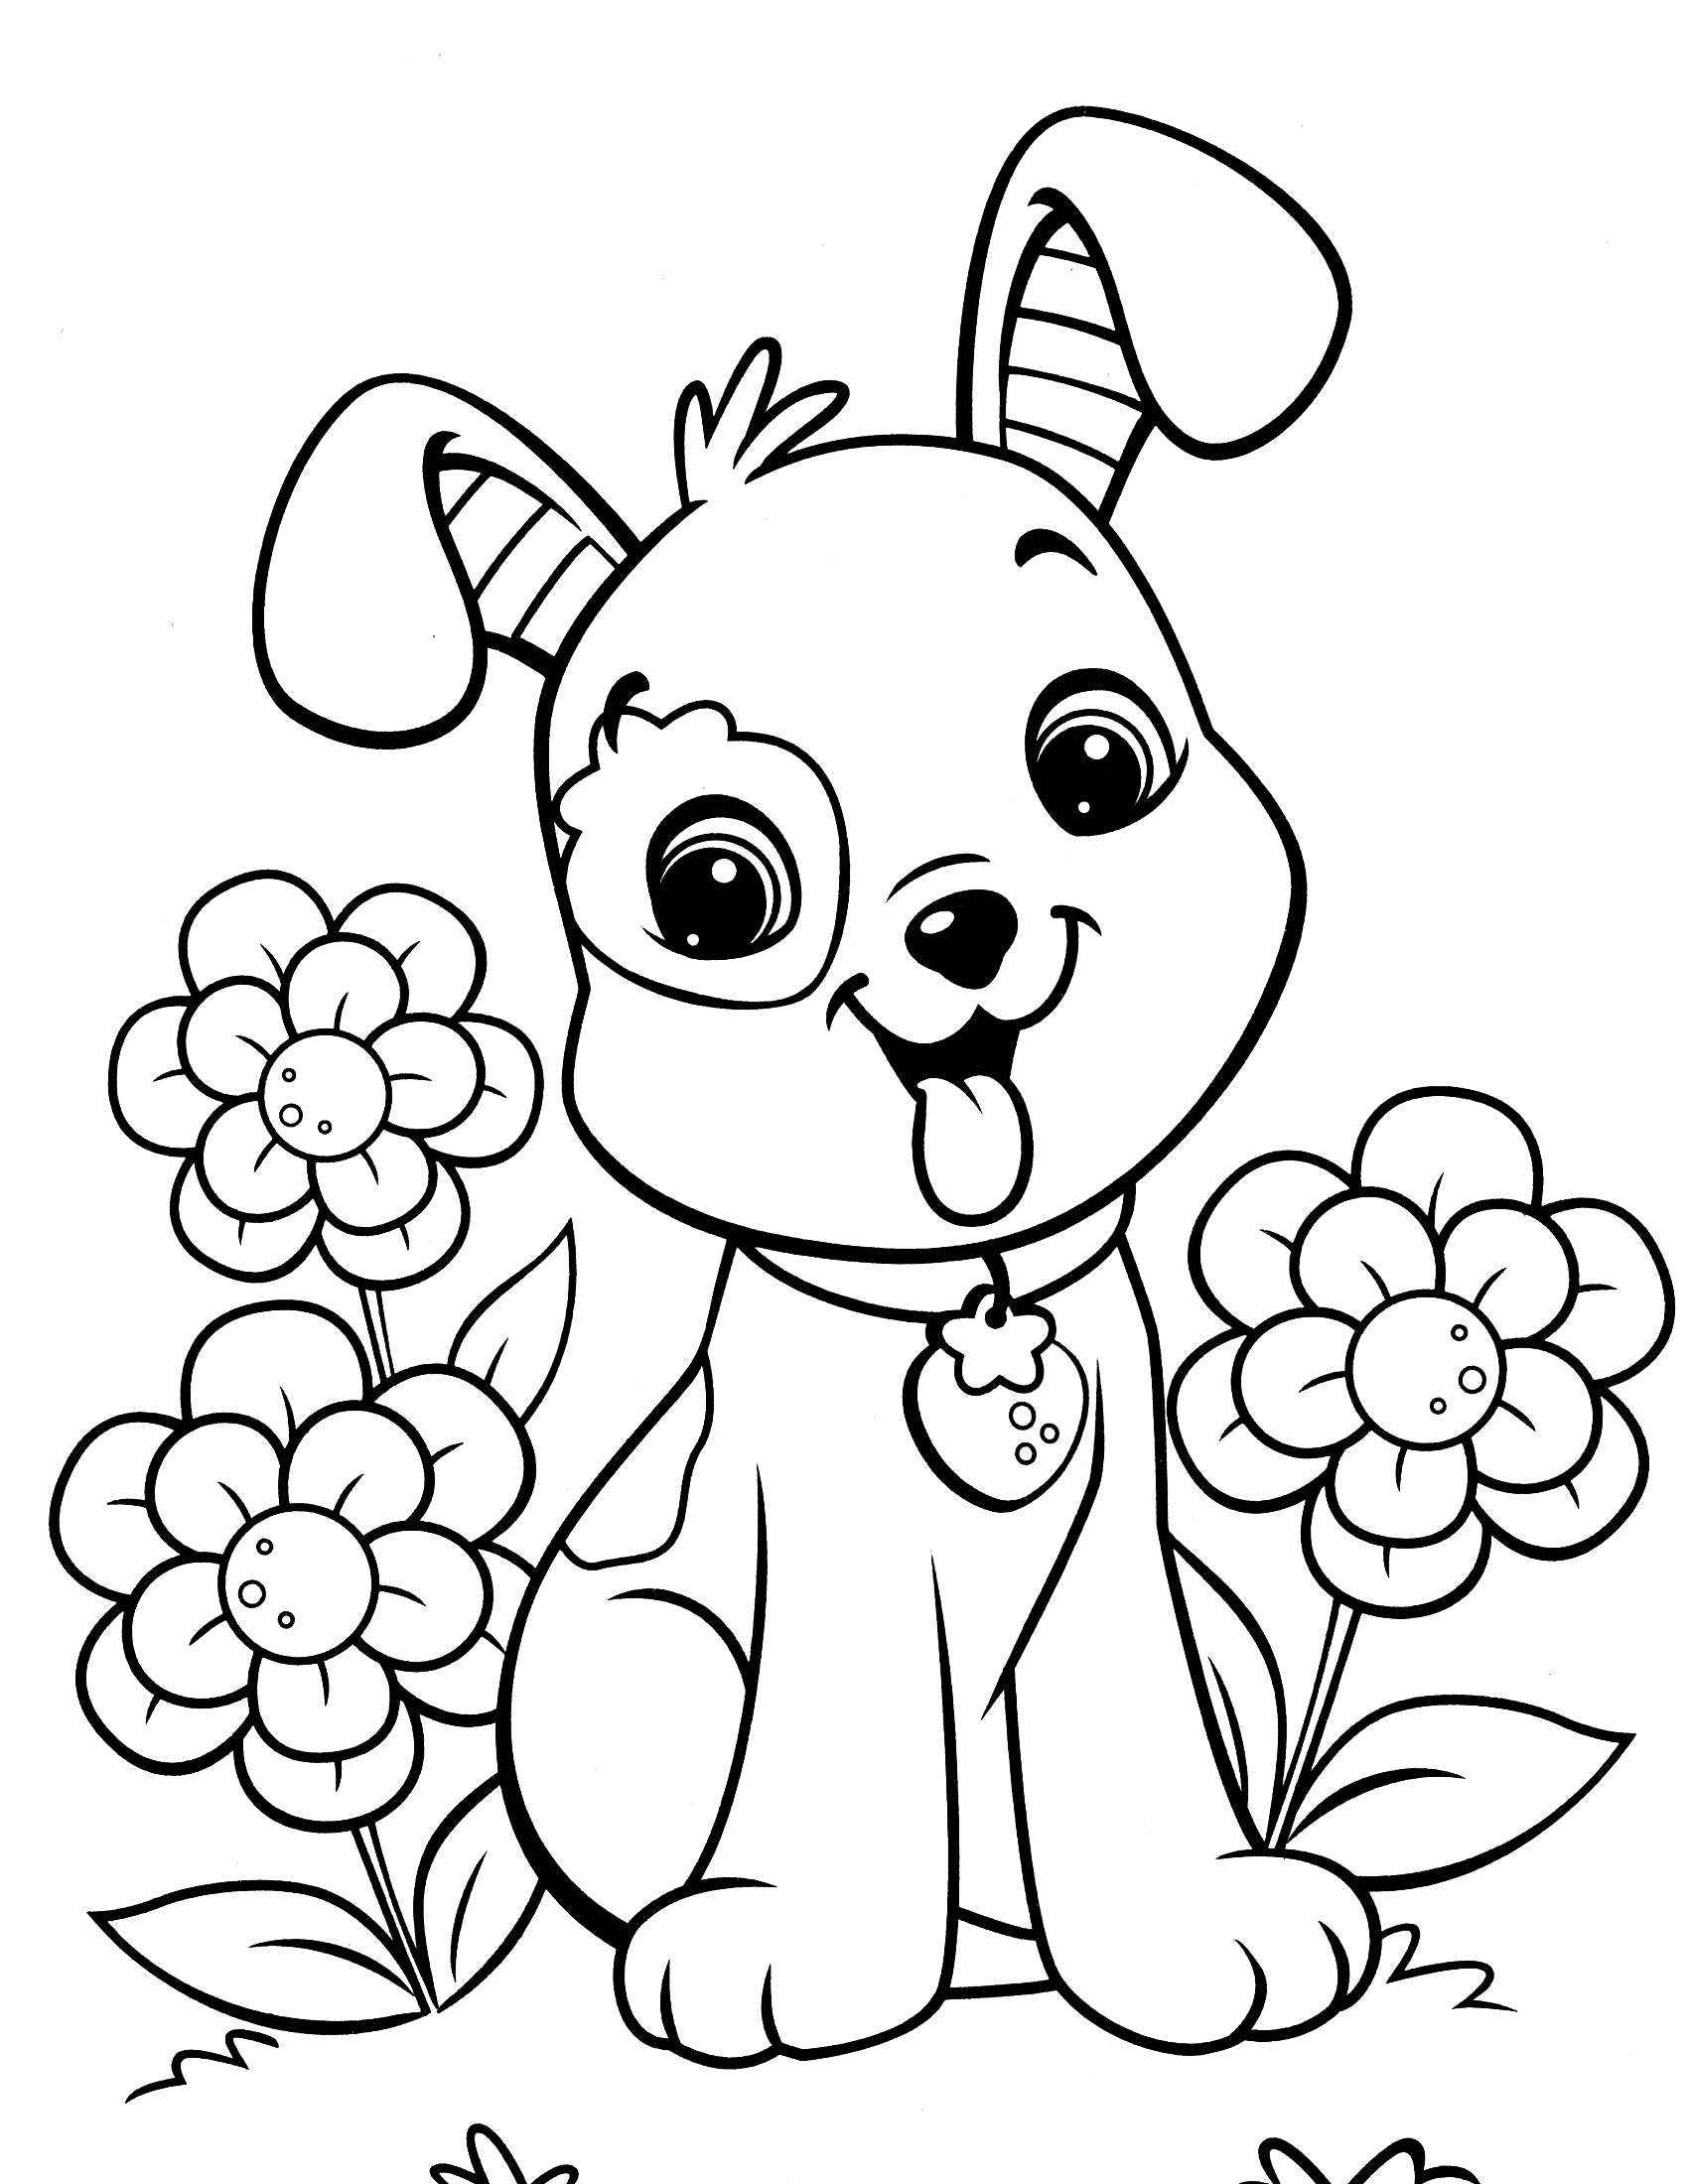 coloring picture puppy puppy coloring pages best coloring pages for kids picture puppy coloring